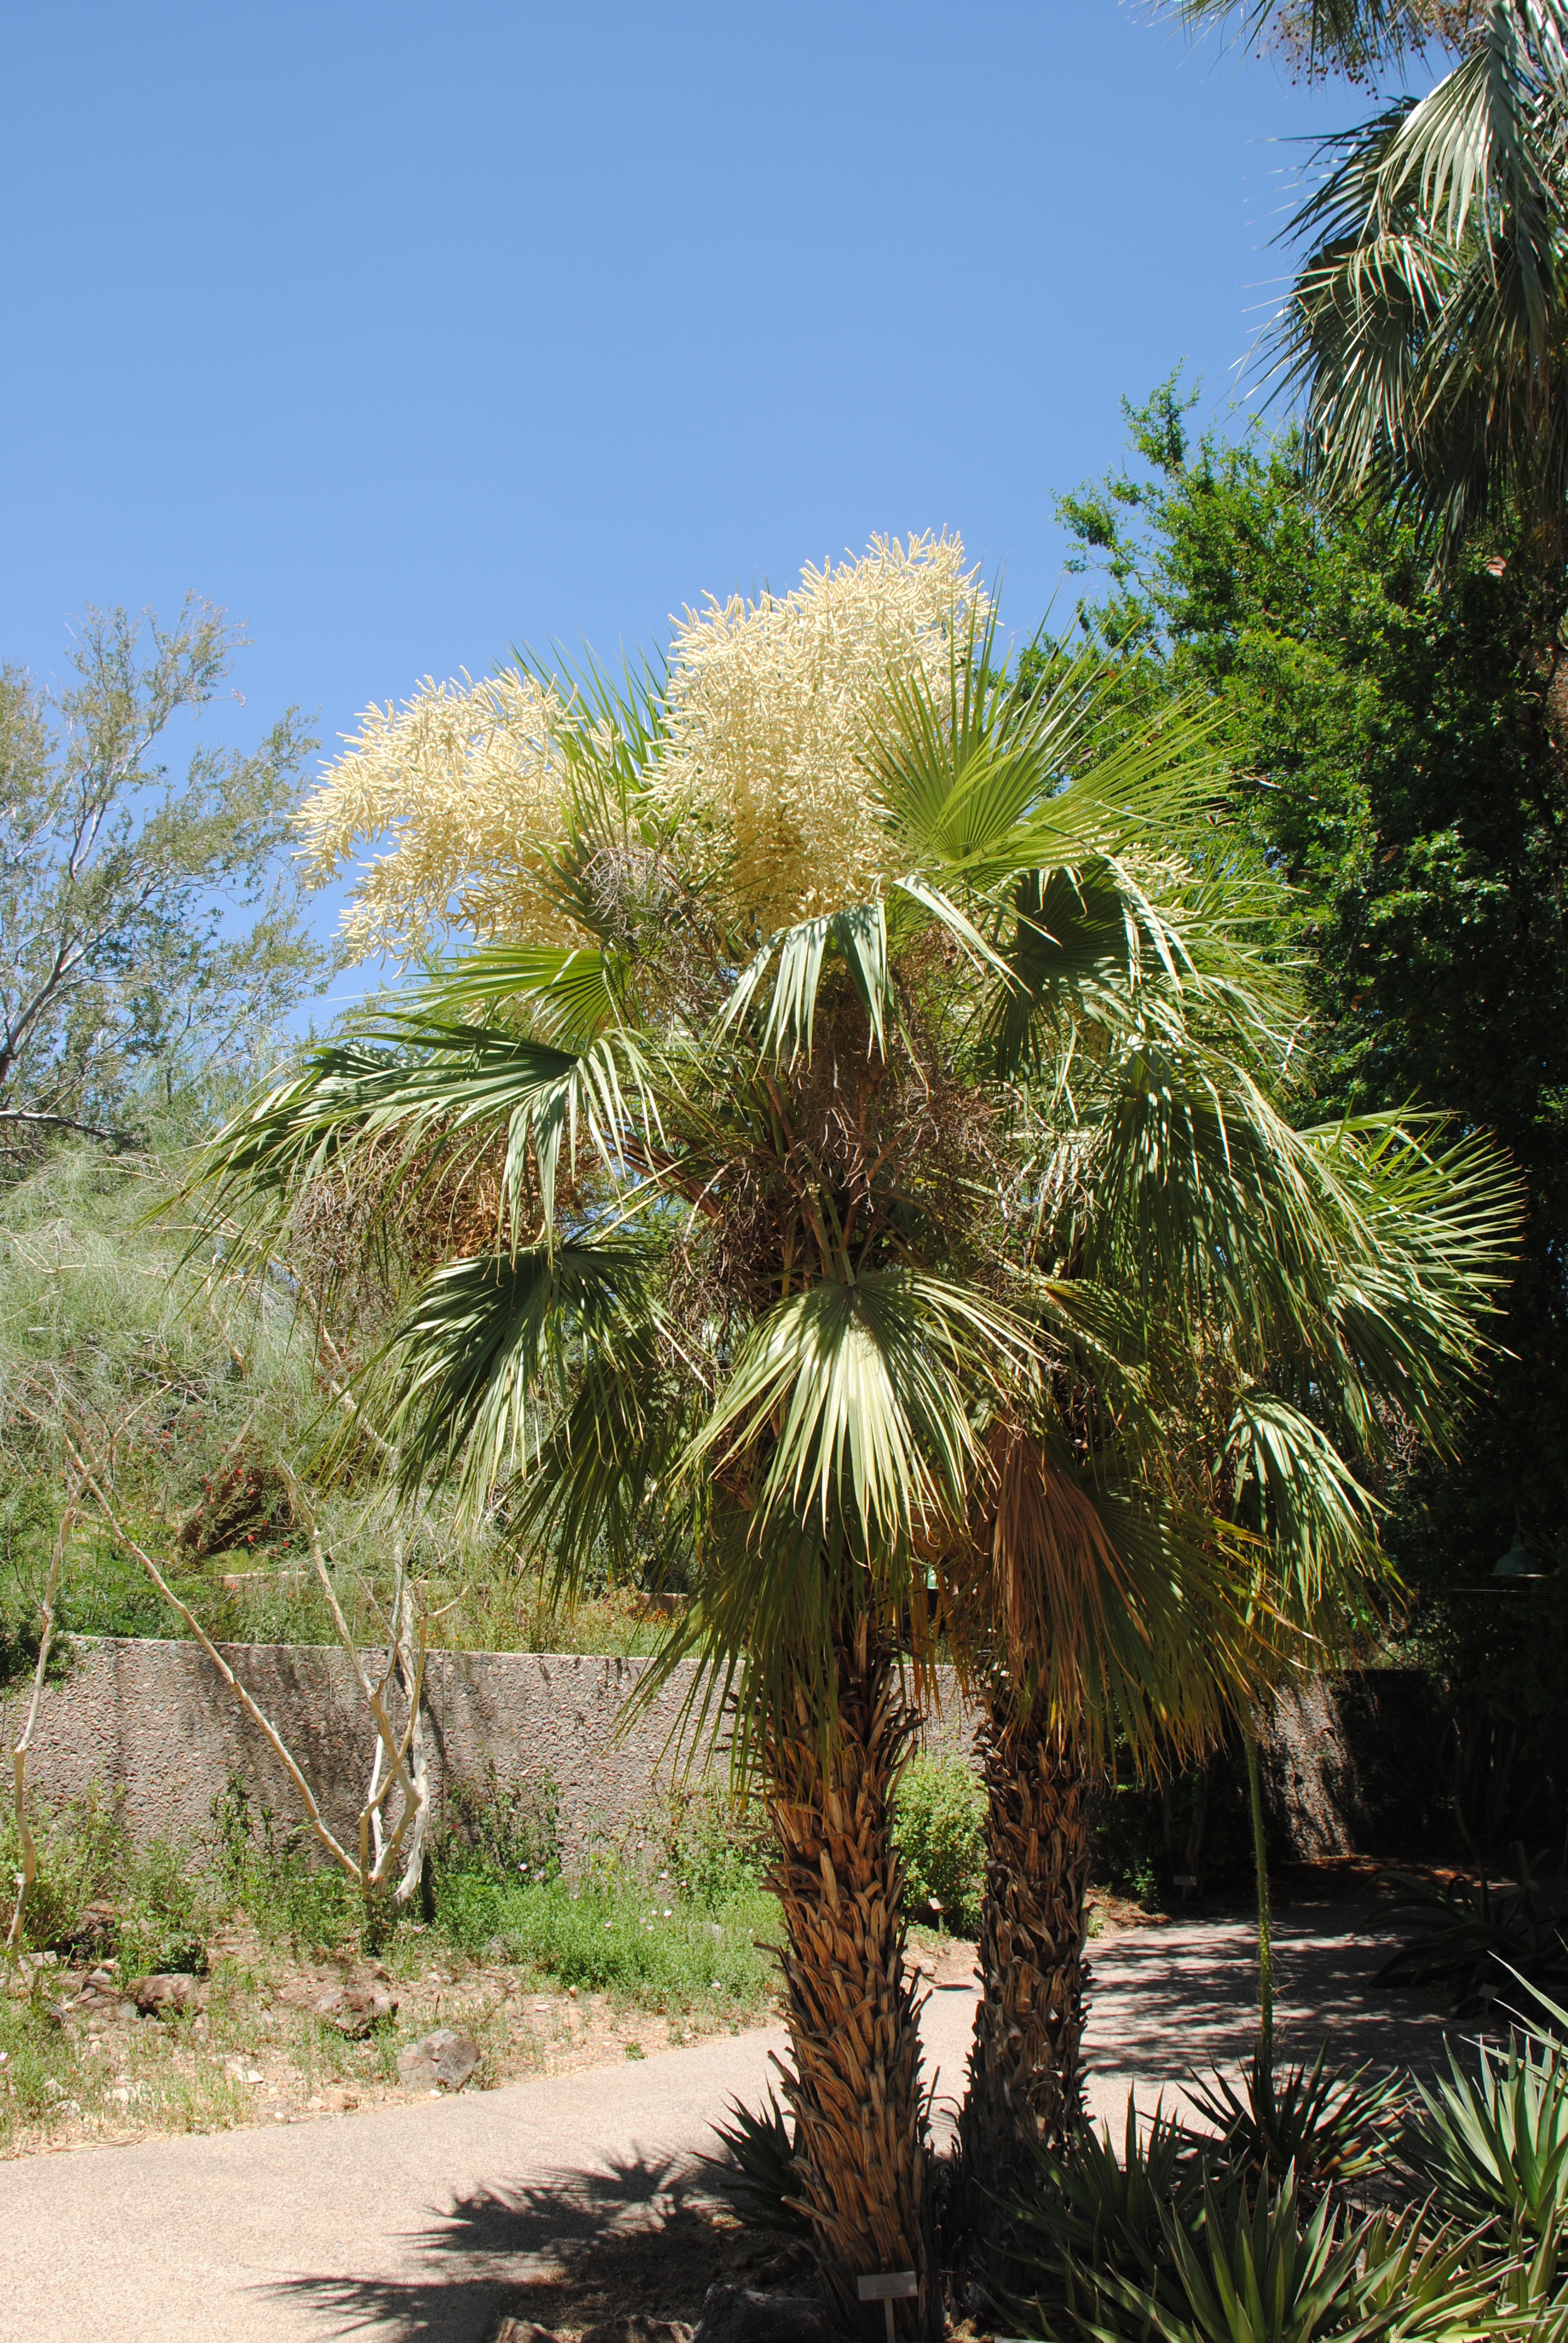 Brahea aculeata is a palm from Mexico which is critically endangered due to severe habitat loss.